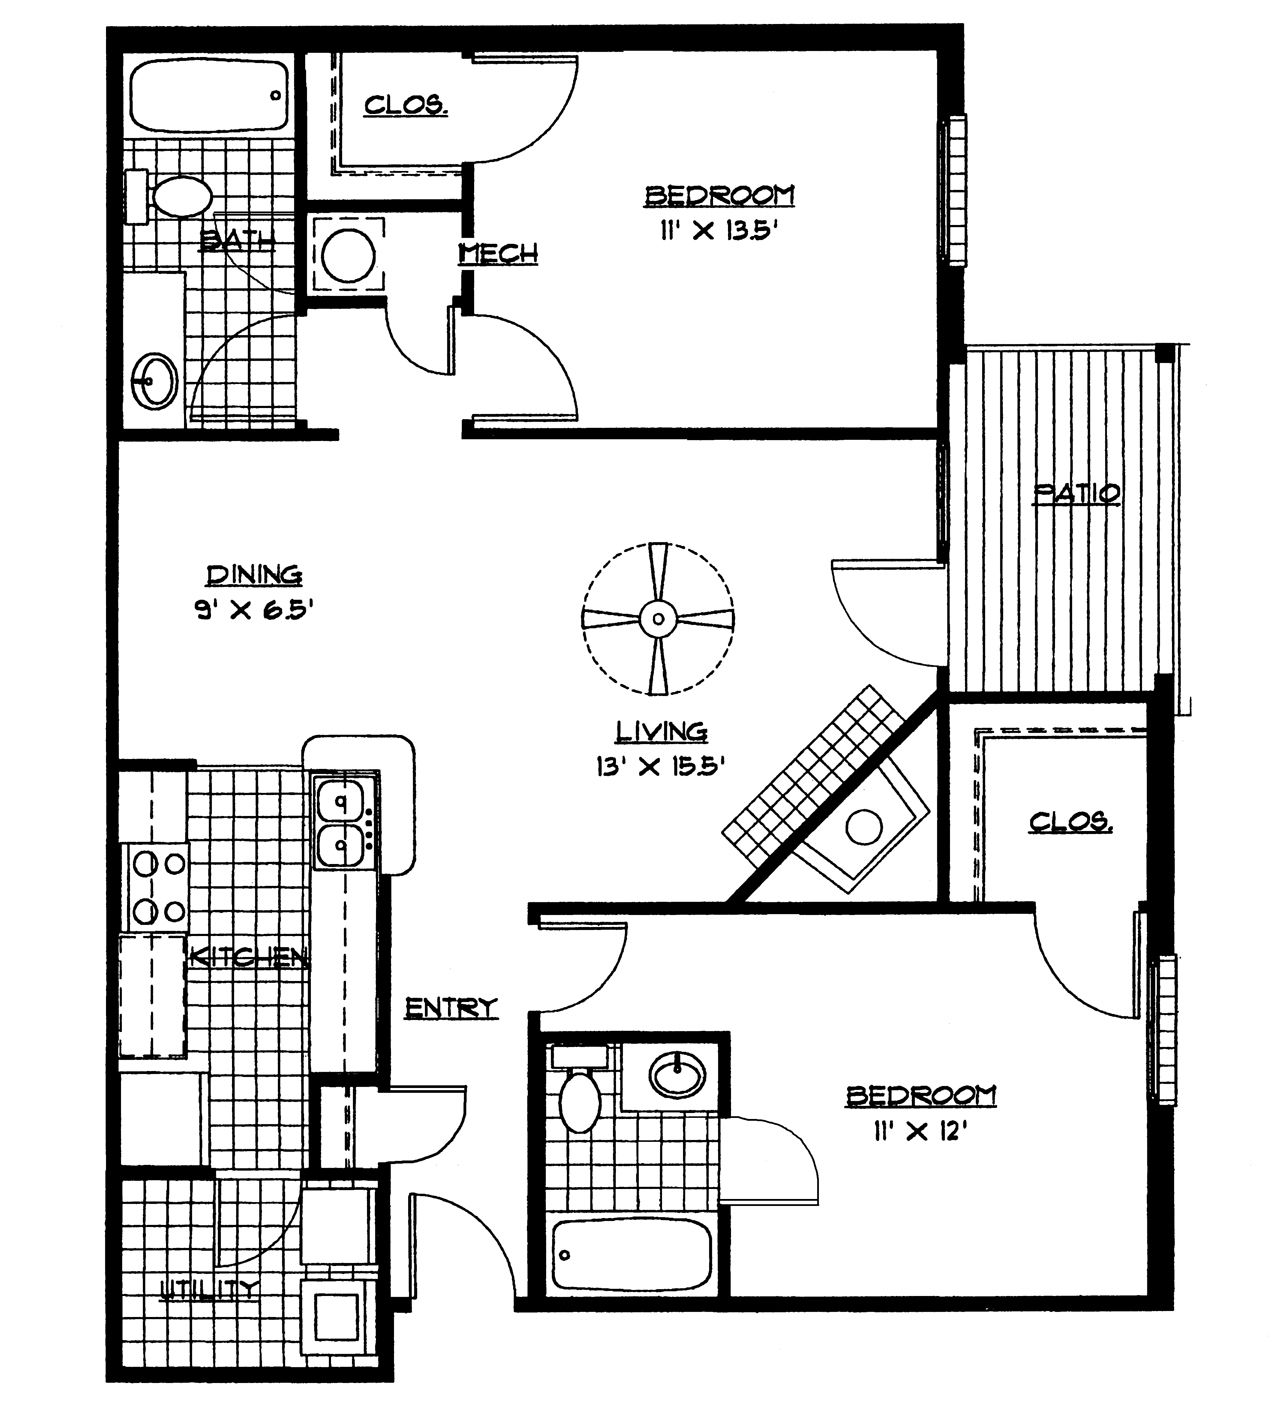 Small house floor plans 2 bedrooms bedroom floor plan download printable pdf